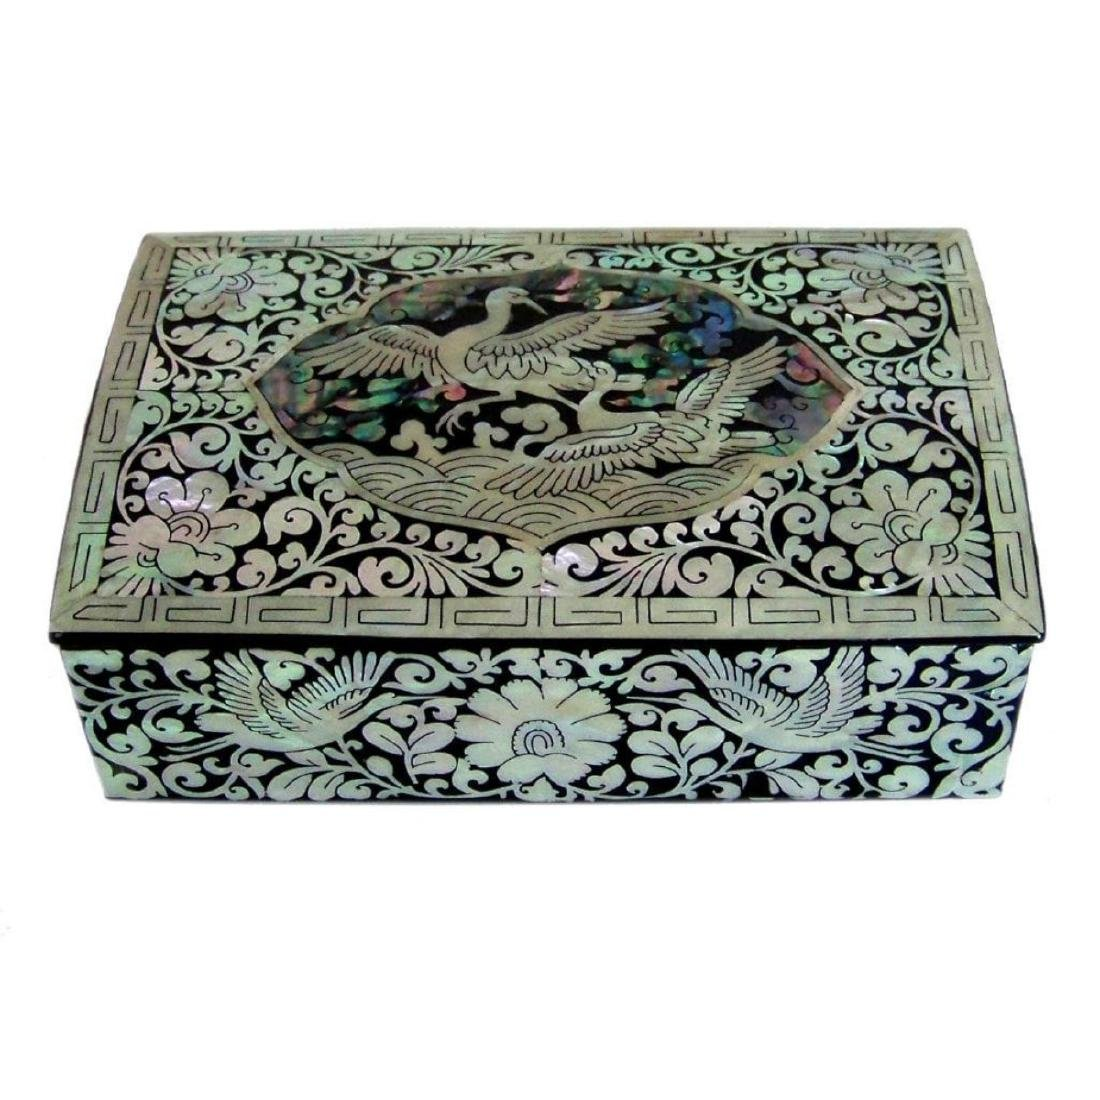 Mother Of Pearl Inlaid Box_ Lacquer Ware Inlaid - 2